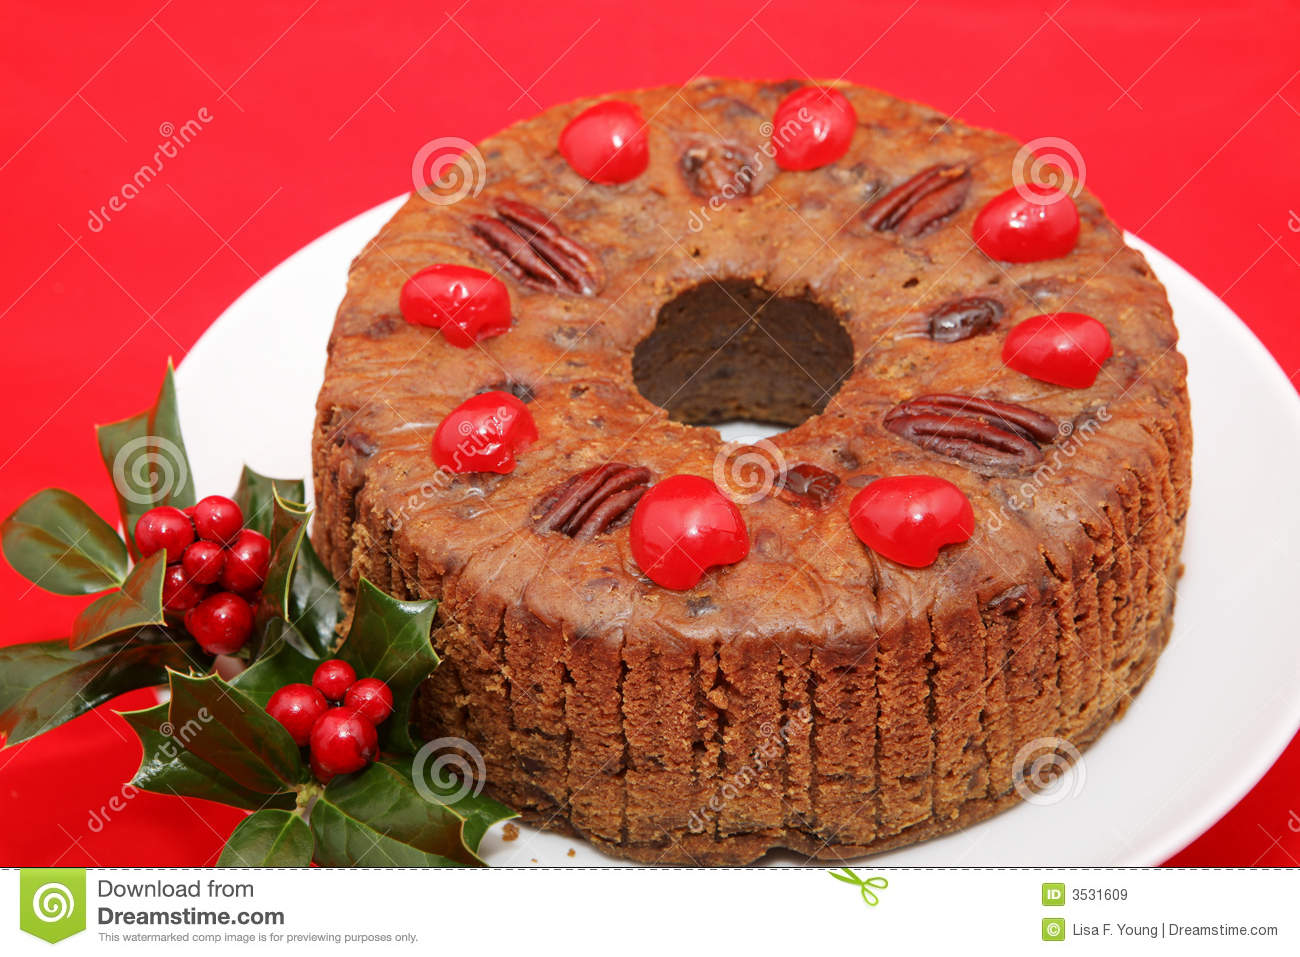 Fruitcakeferiered